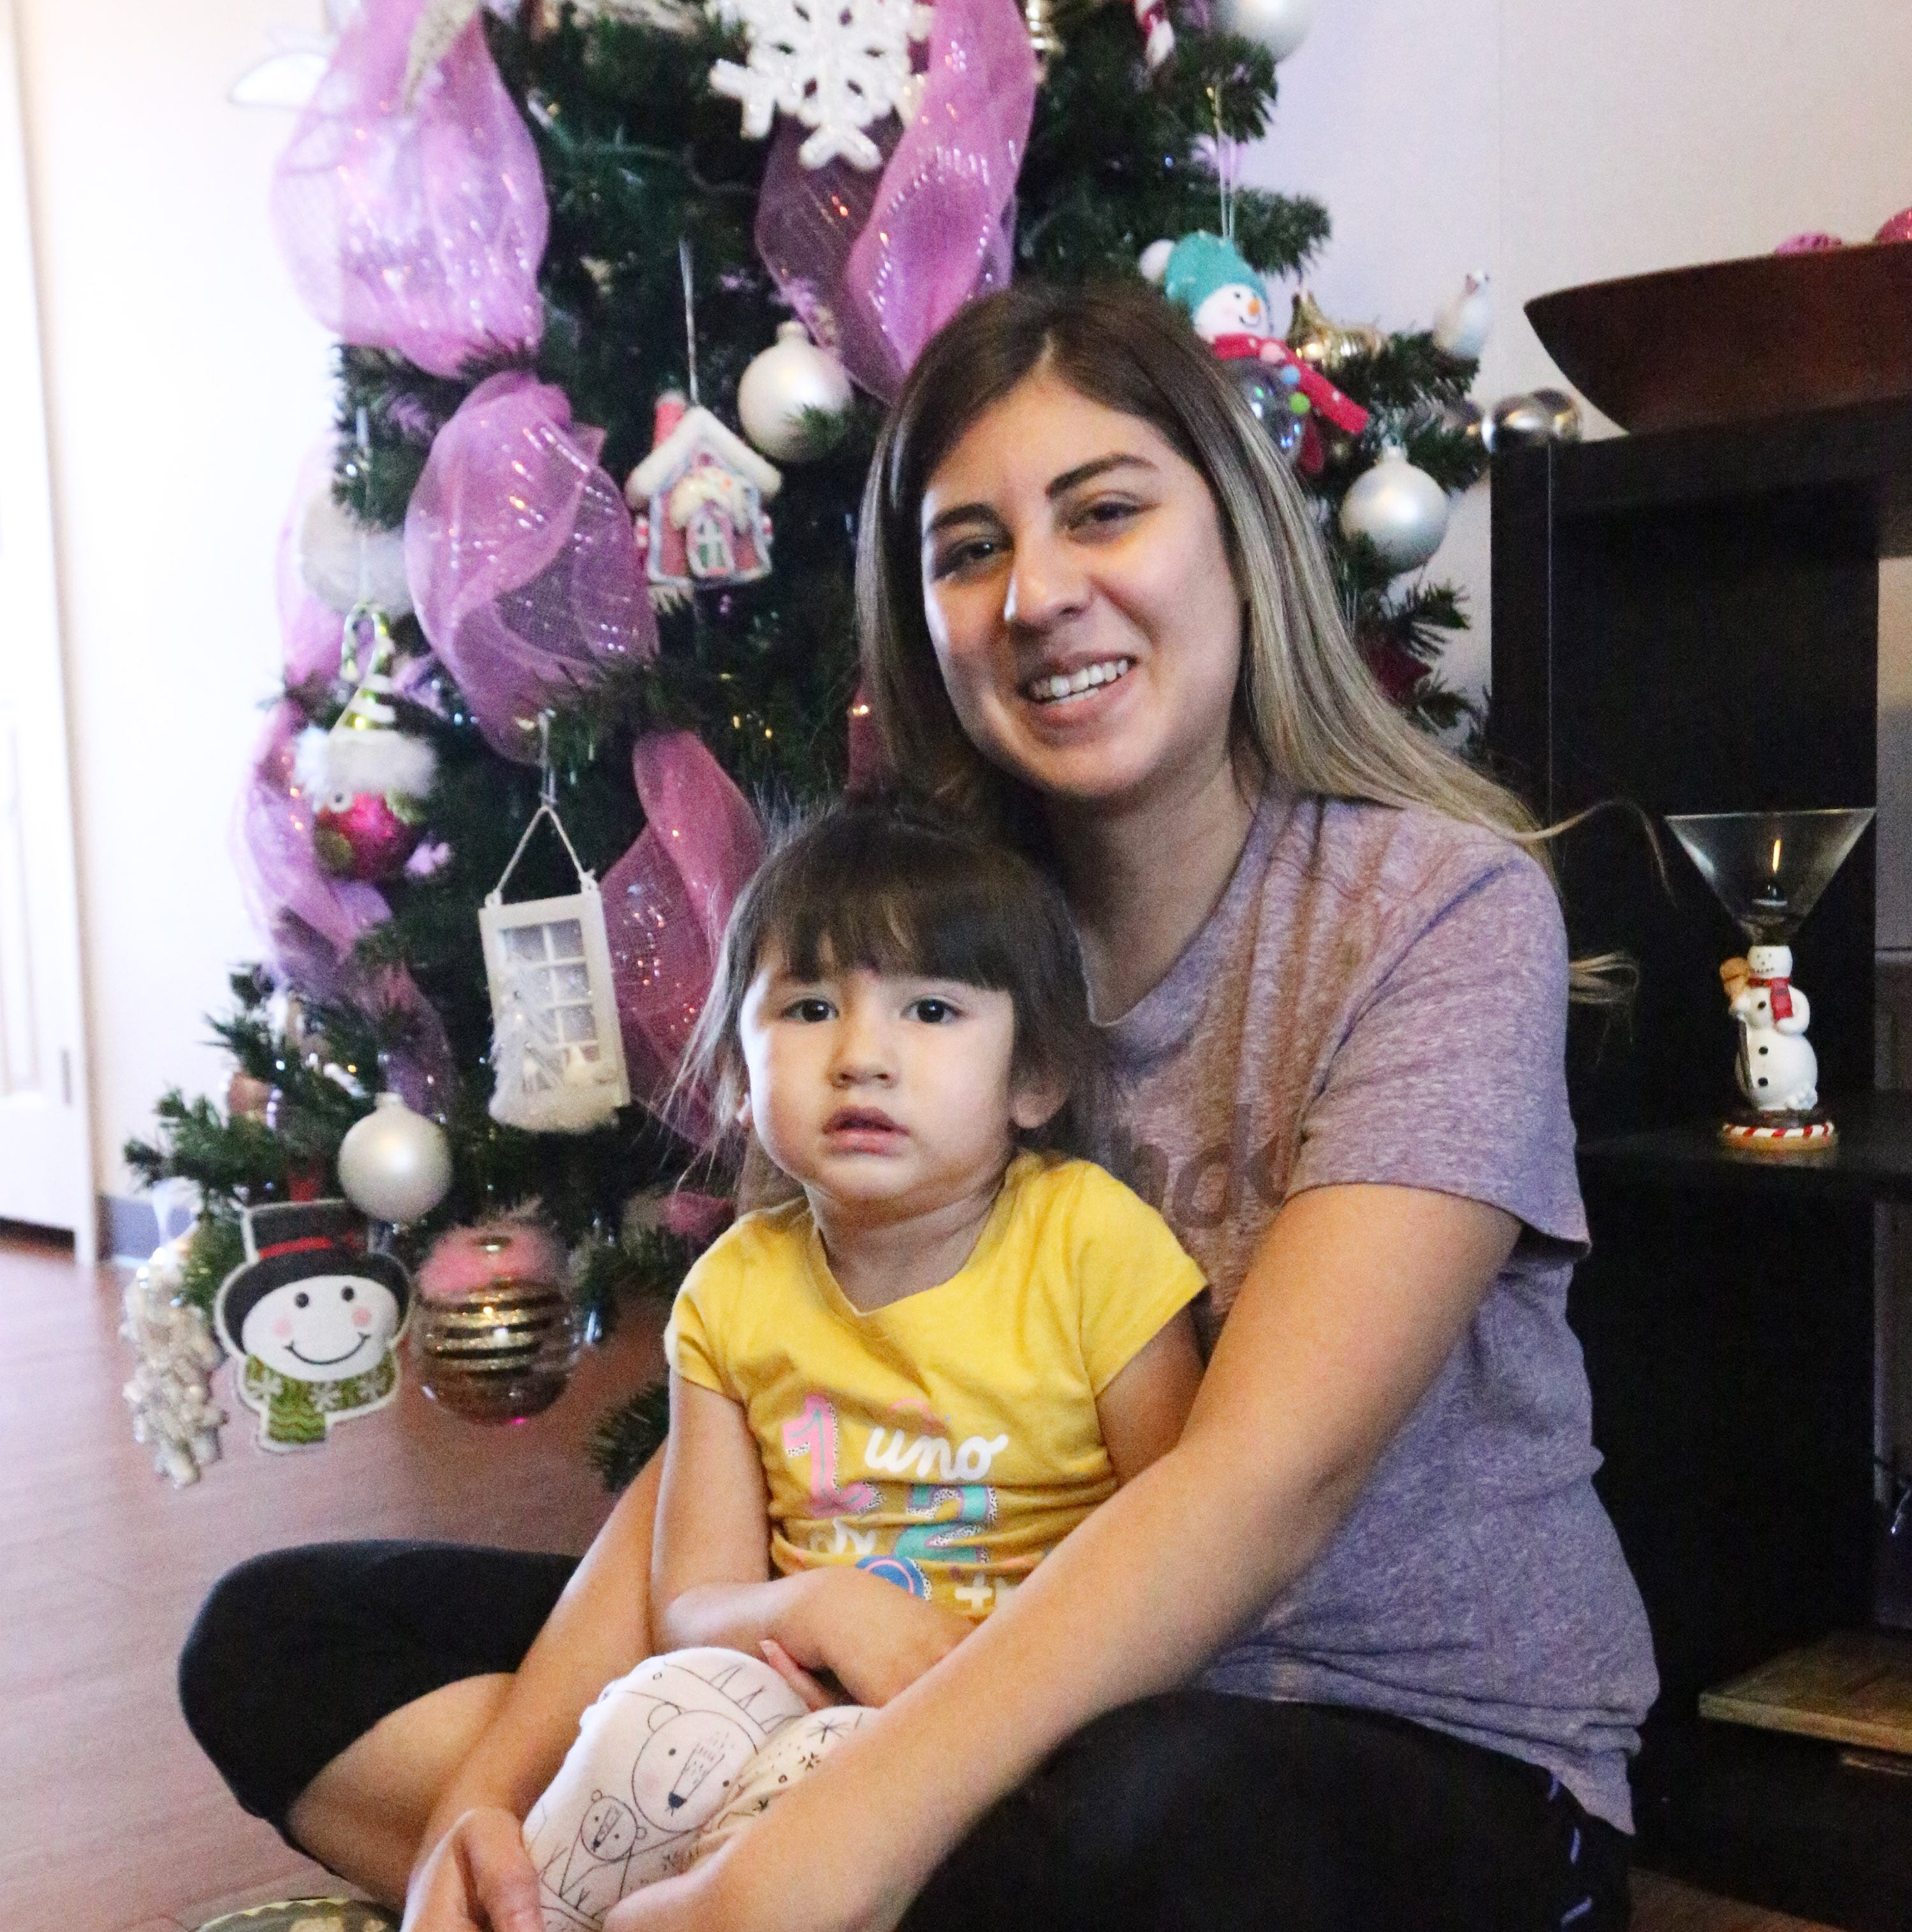 Operation Noel 2018: Single mom needs help buying clothes for daughter, shoes for sister